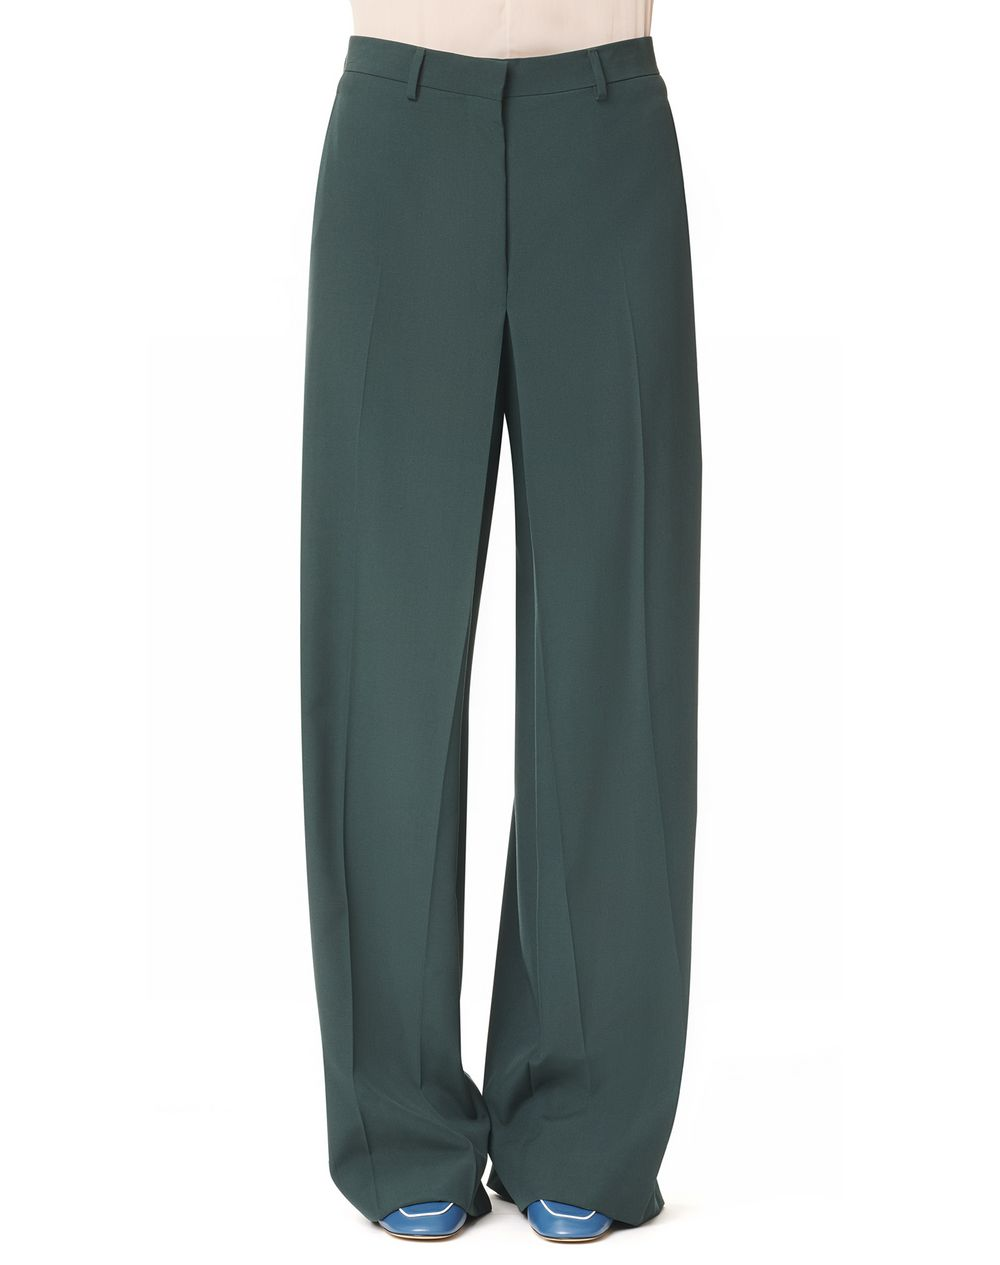 LARGE LEG TROUSERS - Lanvin